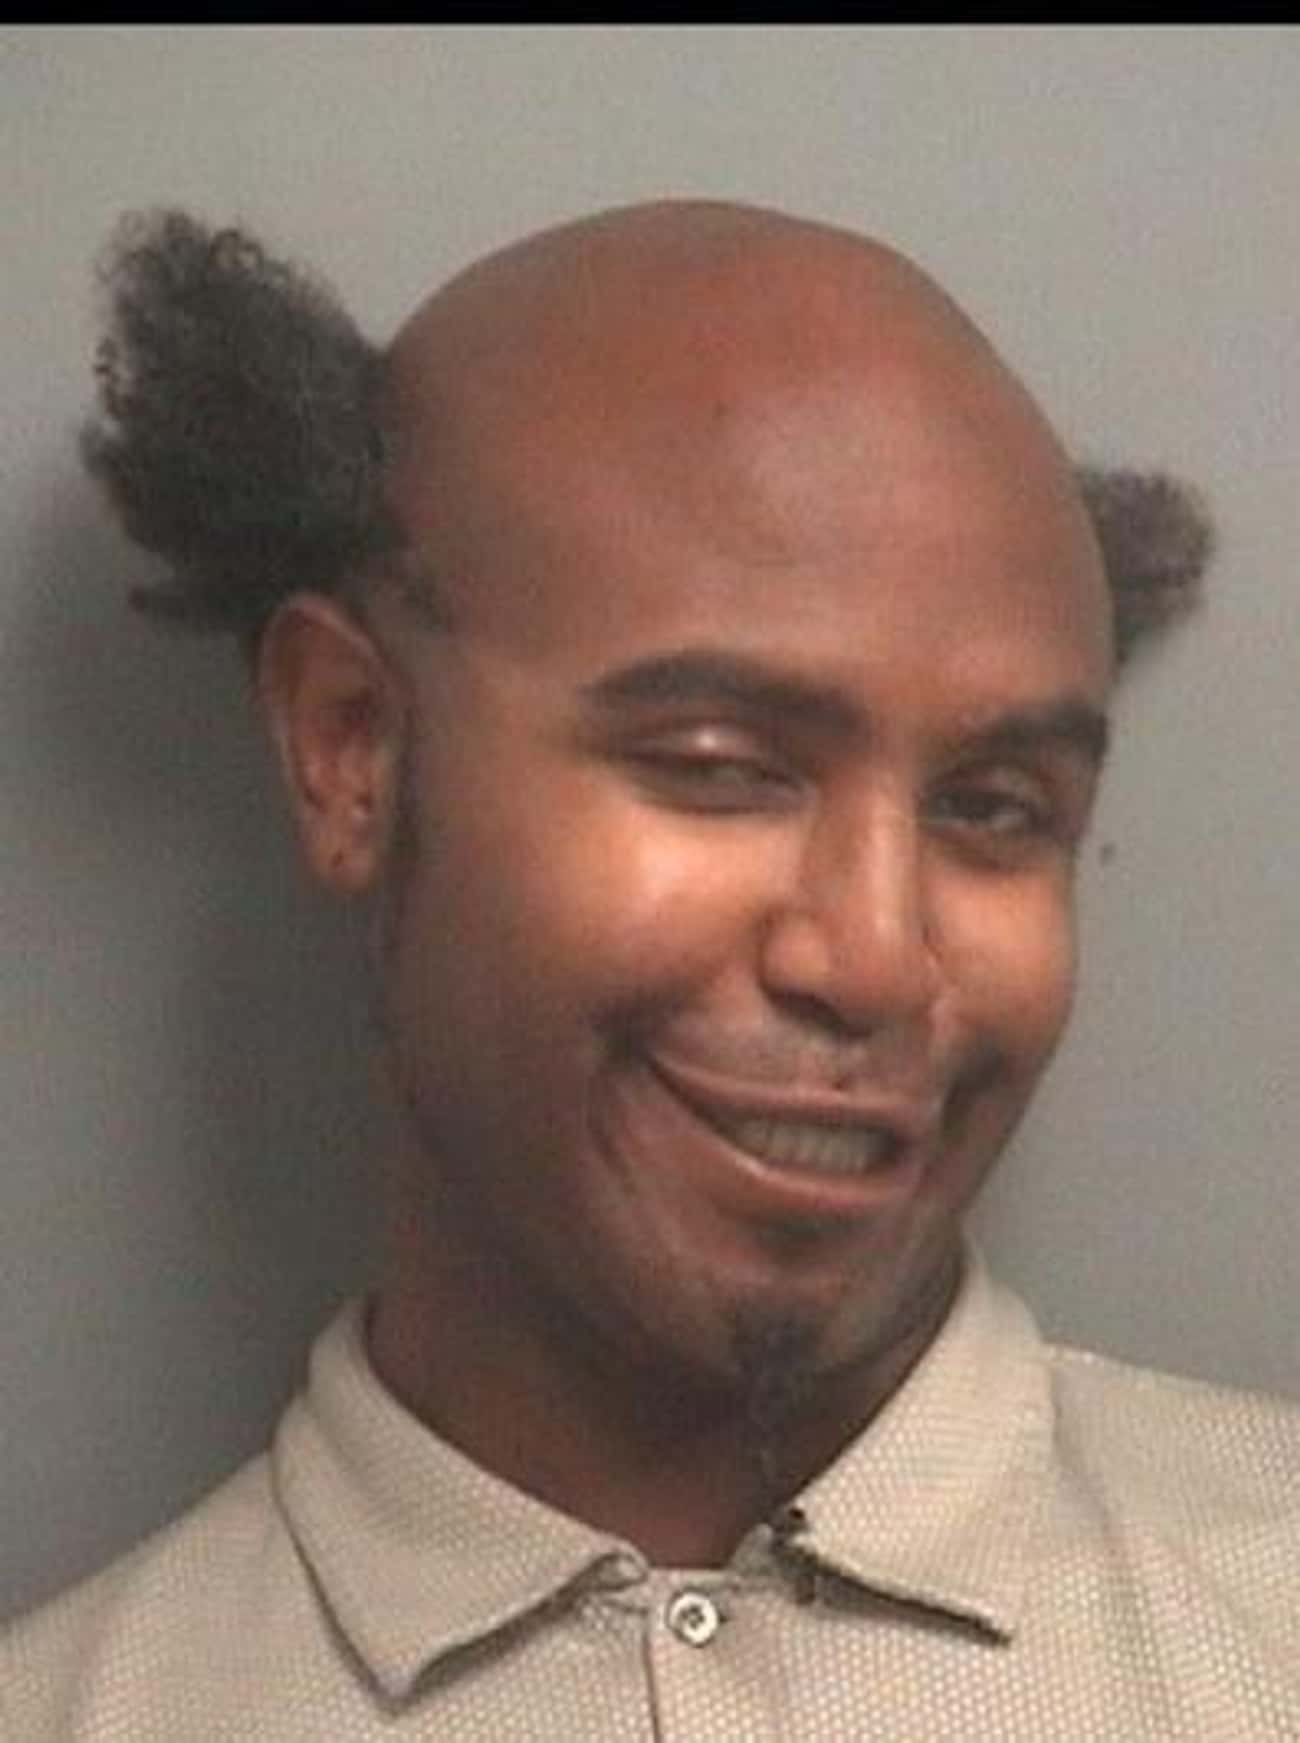 Hair On The Side is listed (or ranked) 4 on the list 27 Of The Most Embarrassing Mugshot Hairdos Ever